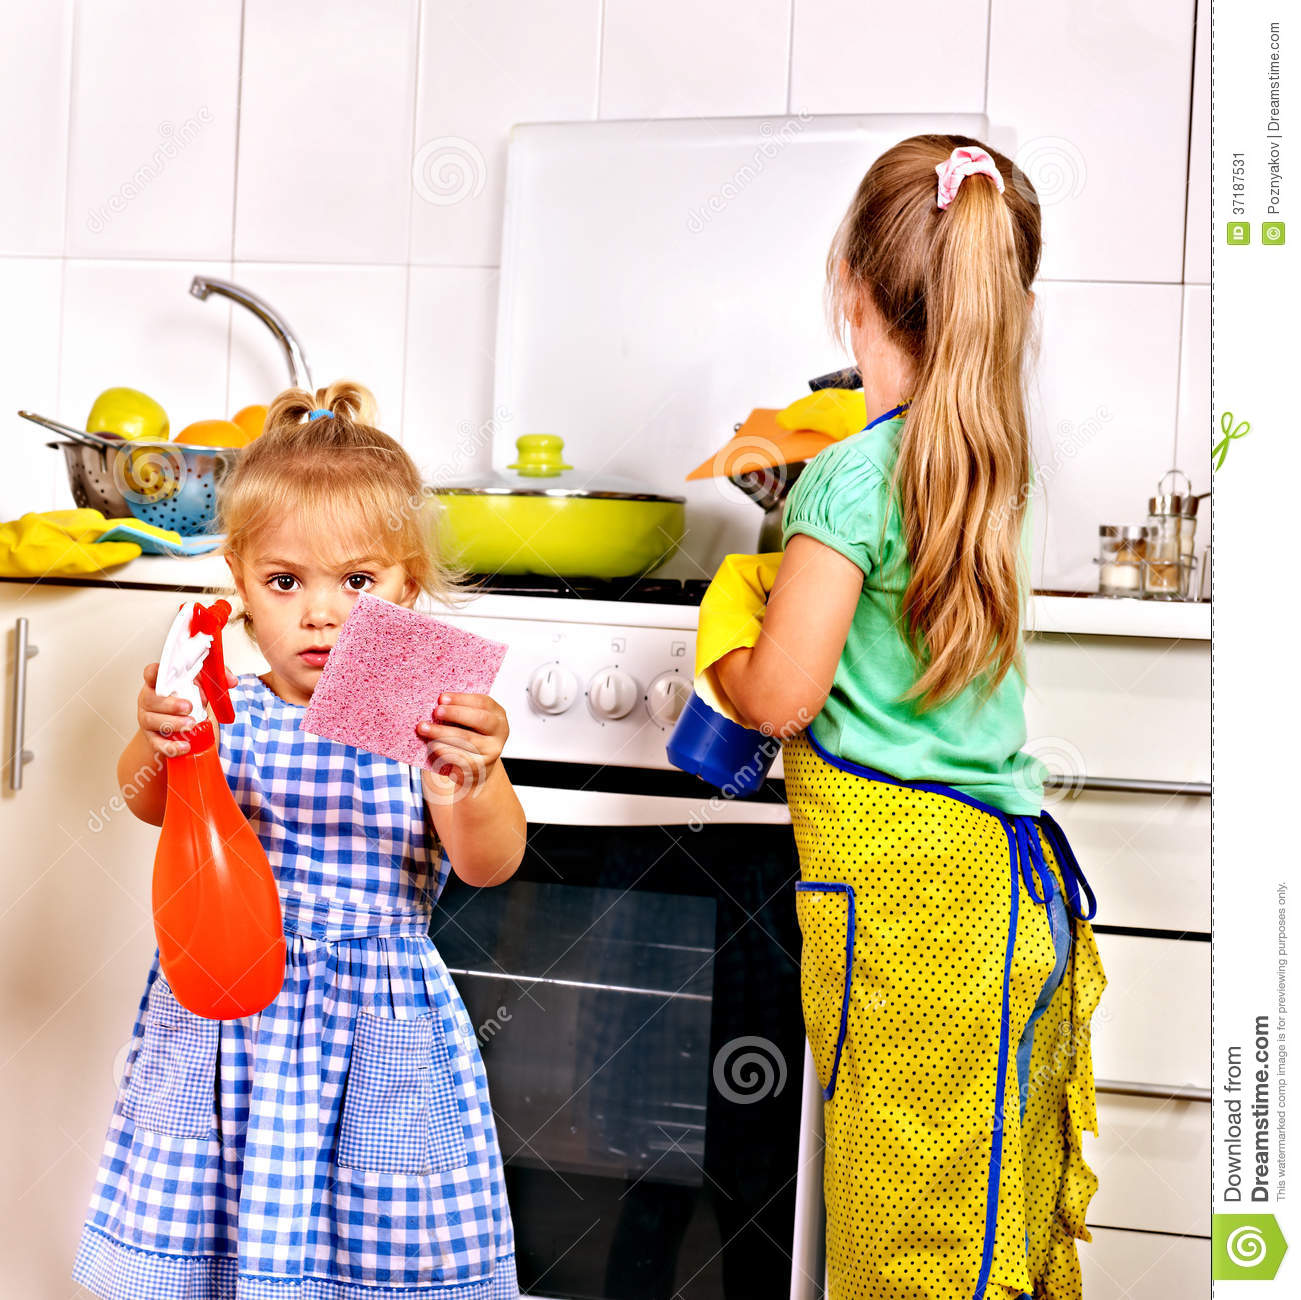 children cleaning - photo #41